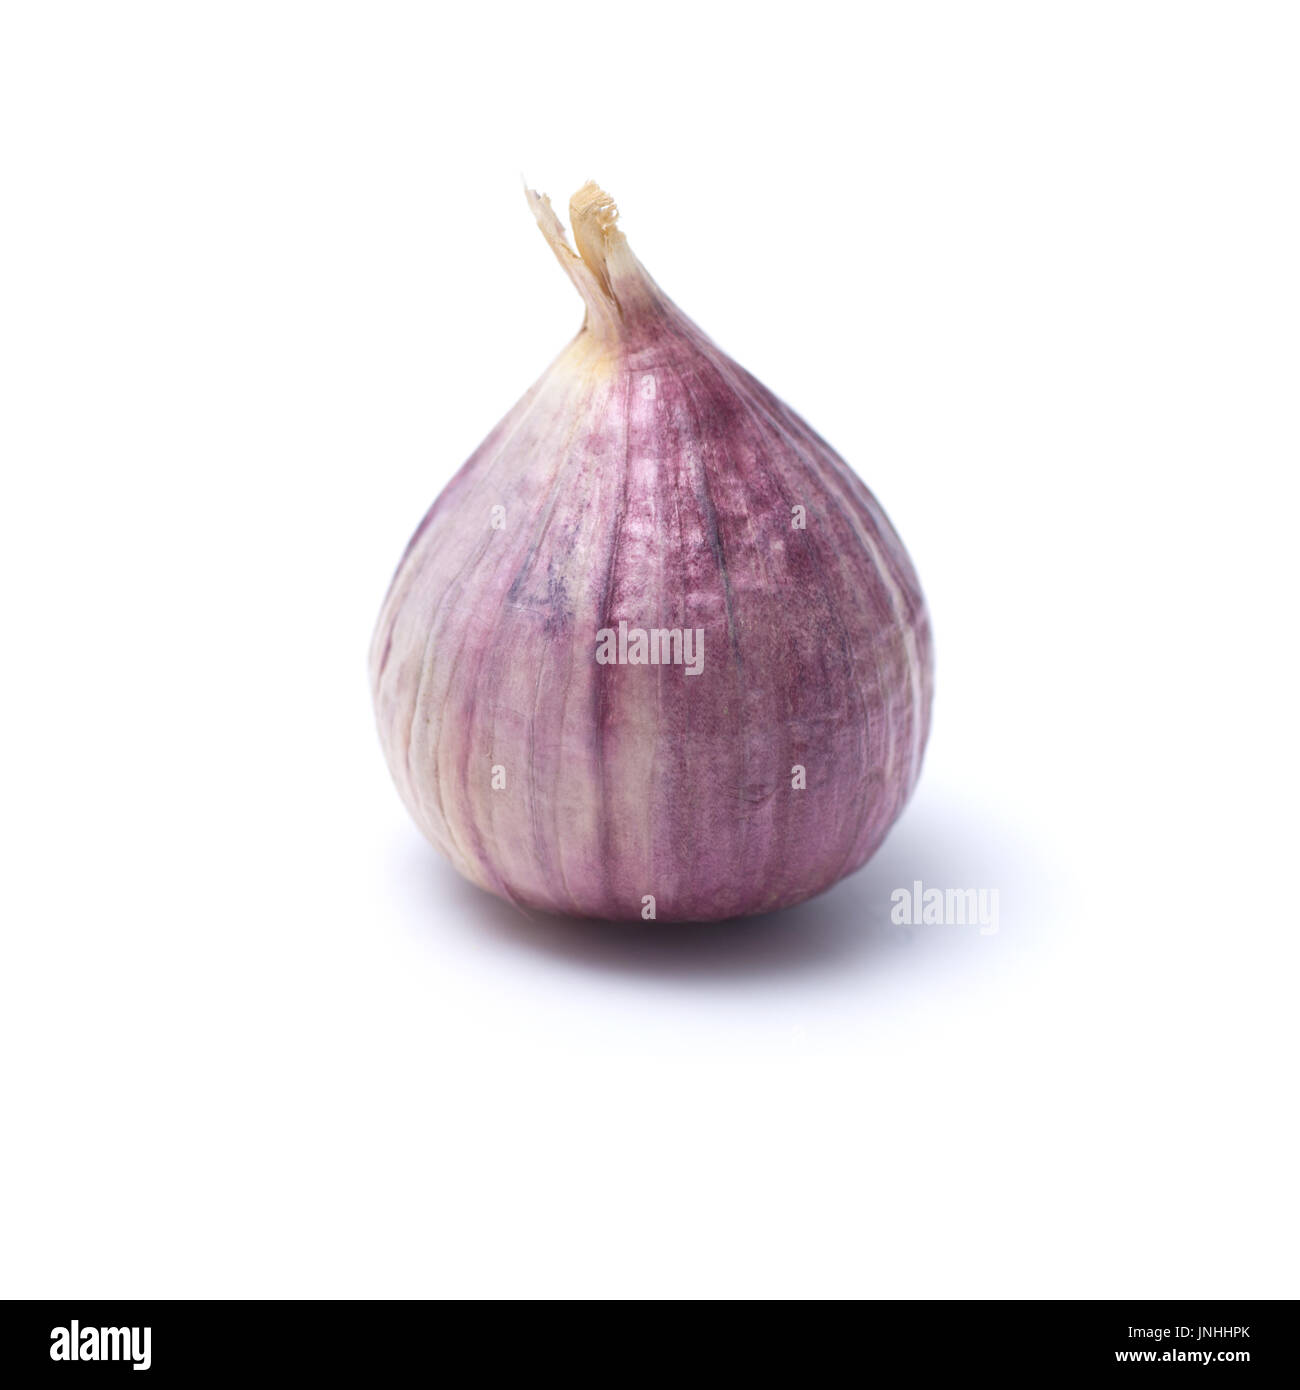 Garlic or Allium ampeloprasum var. ampeloprasum isolated on white background - Stock Image